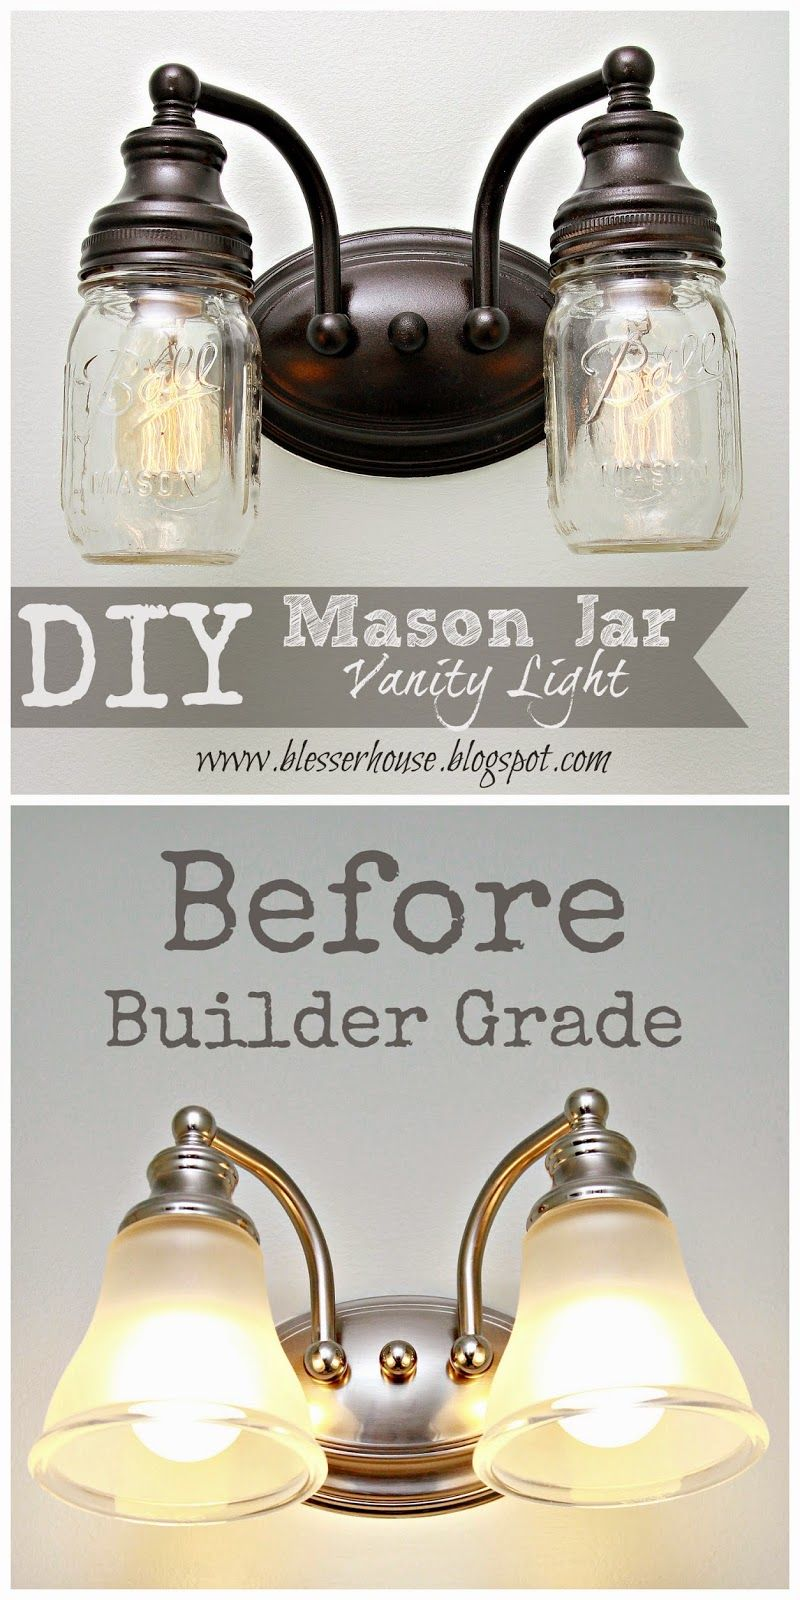 Could Do As Sconces On Either Side Of A Bathroom Mirror Diy Mason Jar Vanity